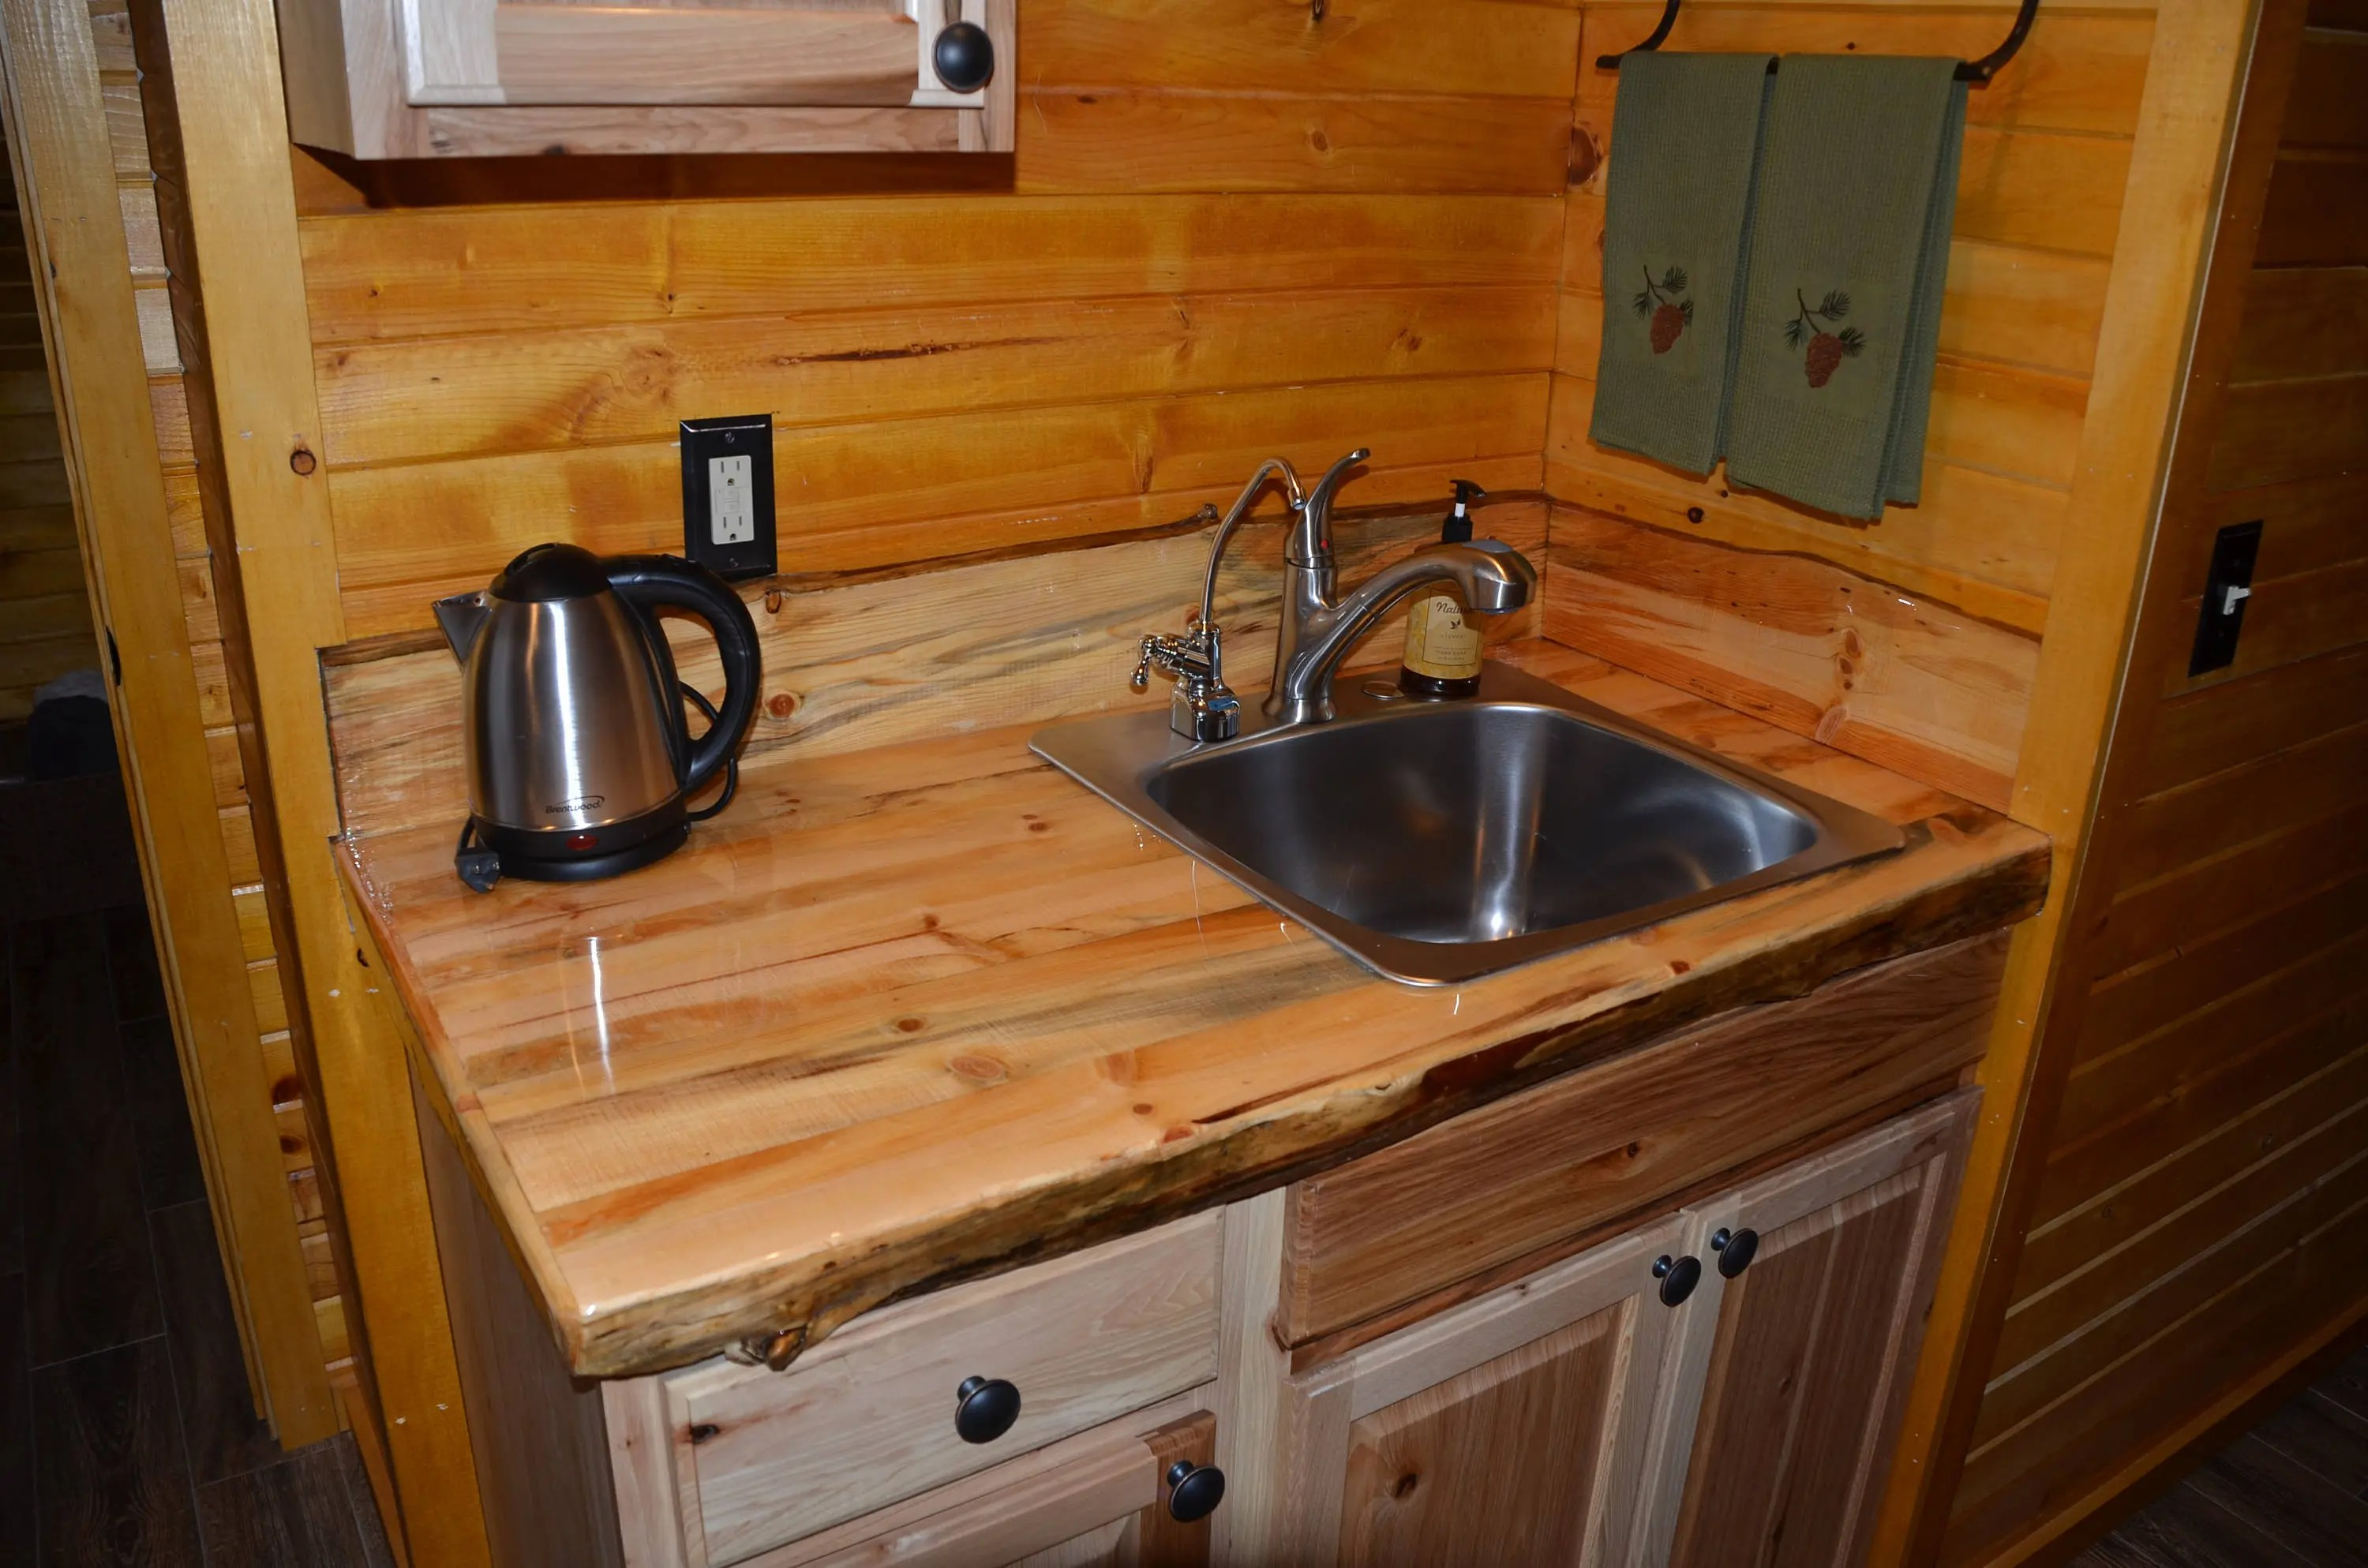 Countertops For Bars Kitchen Bathroom Rustic Wood Countertops Great For Bars And Islands Too Custom Handmade By The Foot